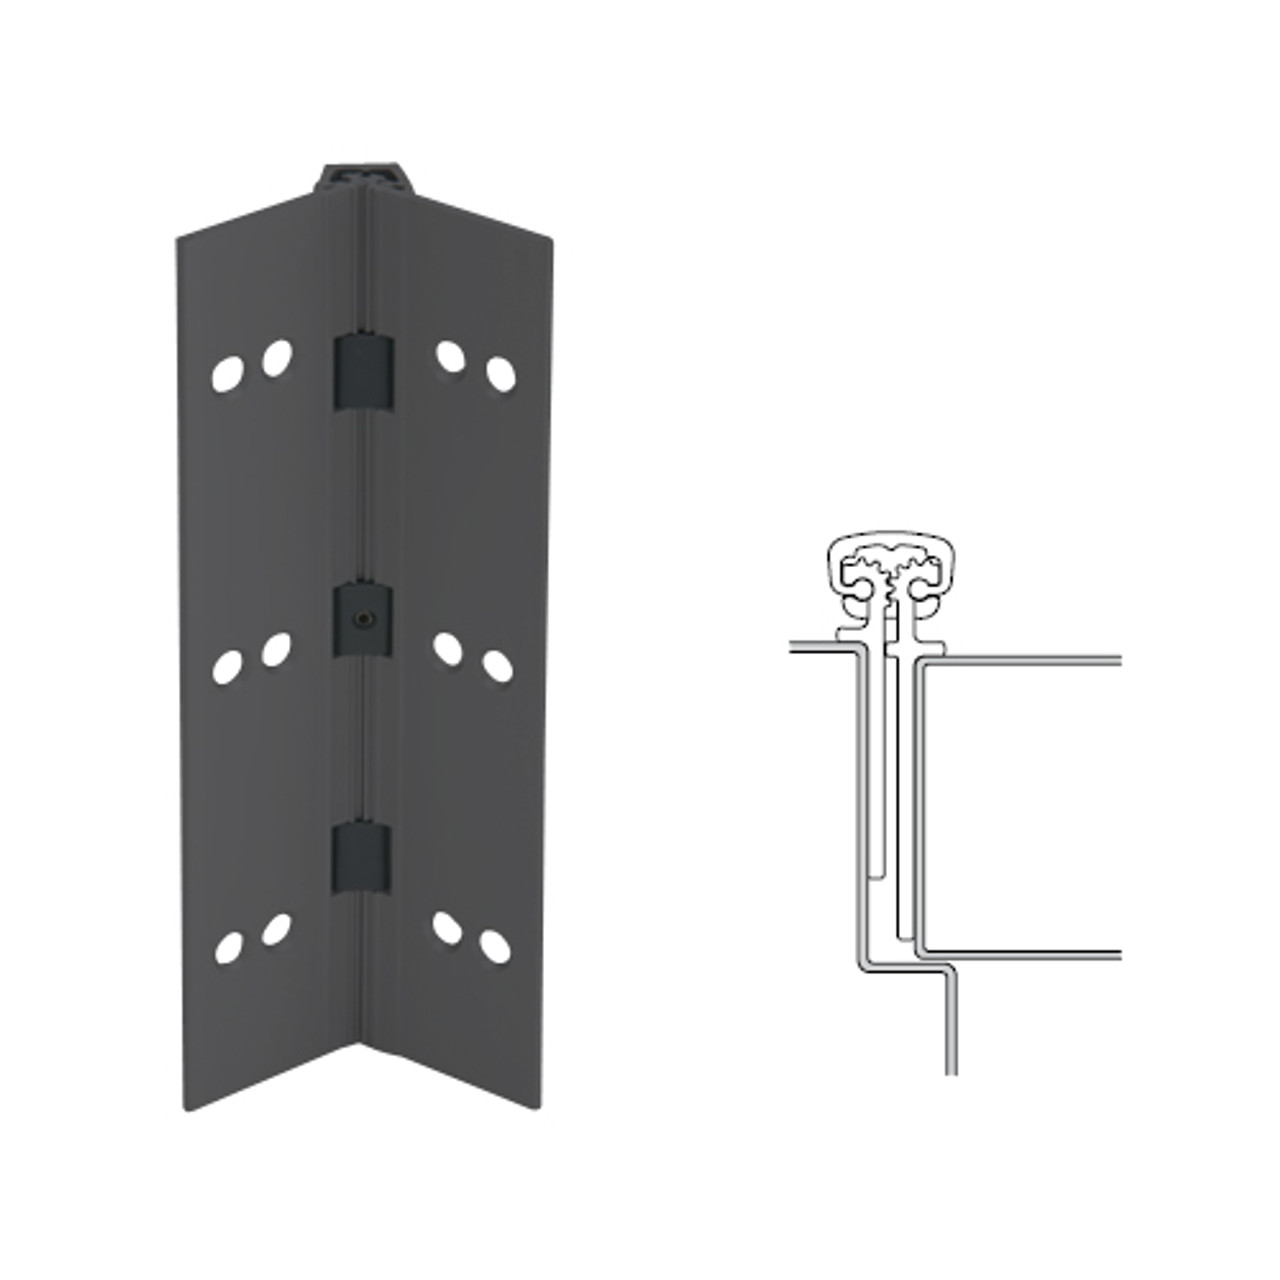 026XY-315AN-120-SECHM IVES Full Mortise Continuous Geared Hinges with Security Screws - Hex Pin Drive in Anodized Black